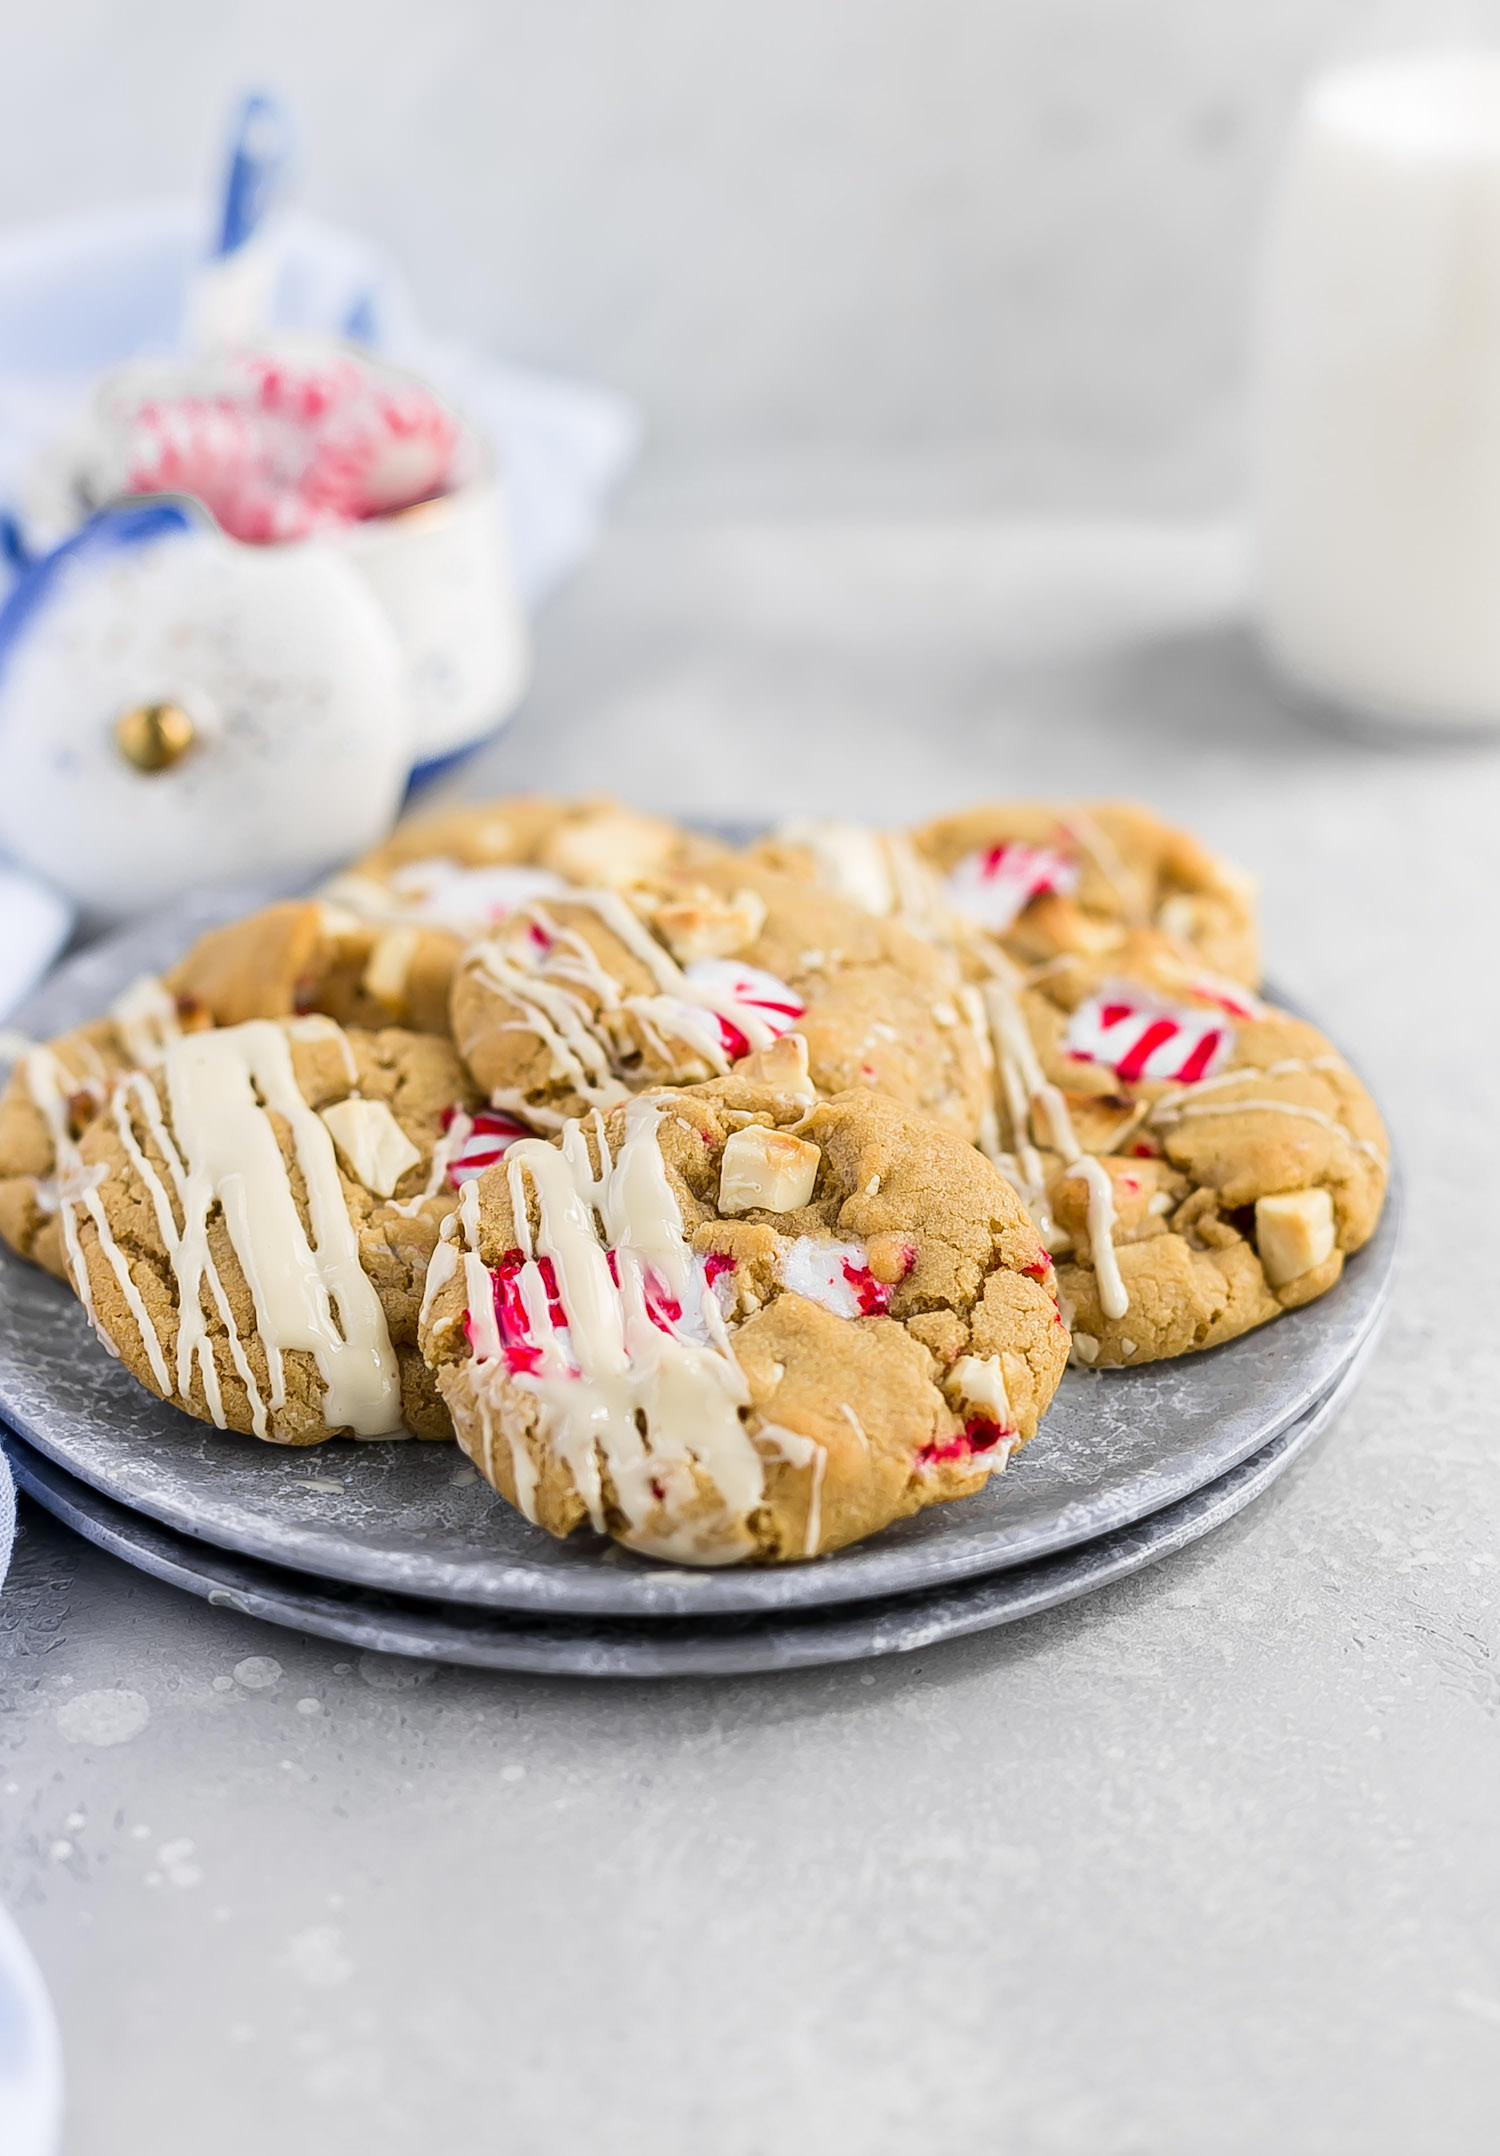 Brown Butter Peppermint White Chocolate Cookies: soft, chewy brown butter cookies packed with white milk chocolate and peppermint candies. Holiday perfection! | TrufflesandTrends.com